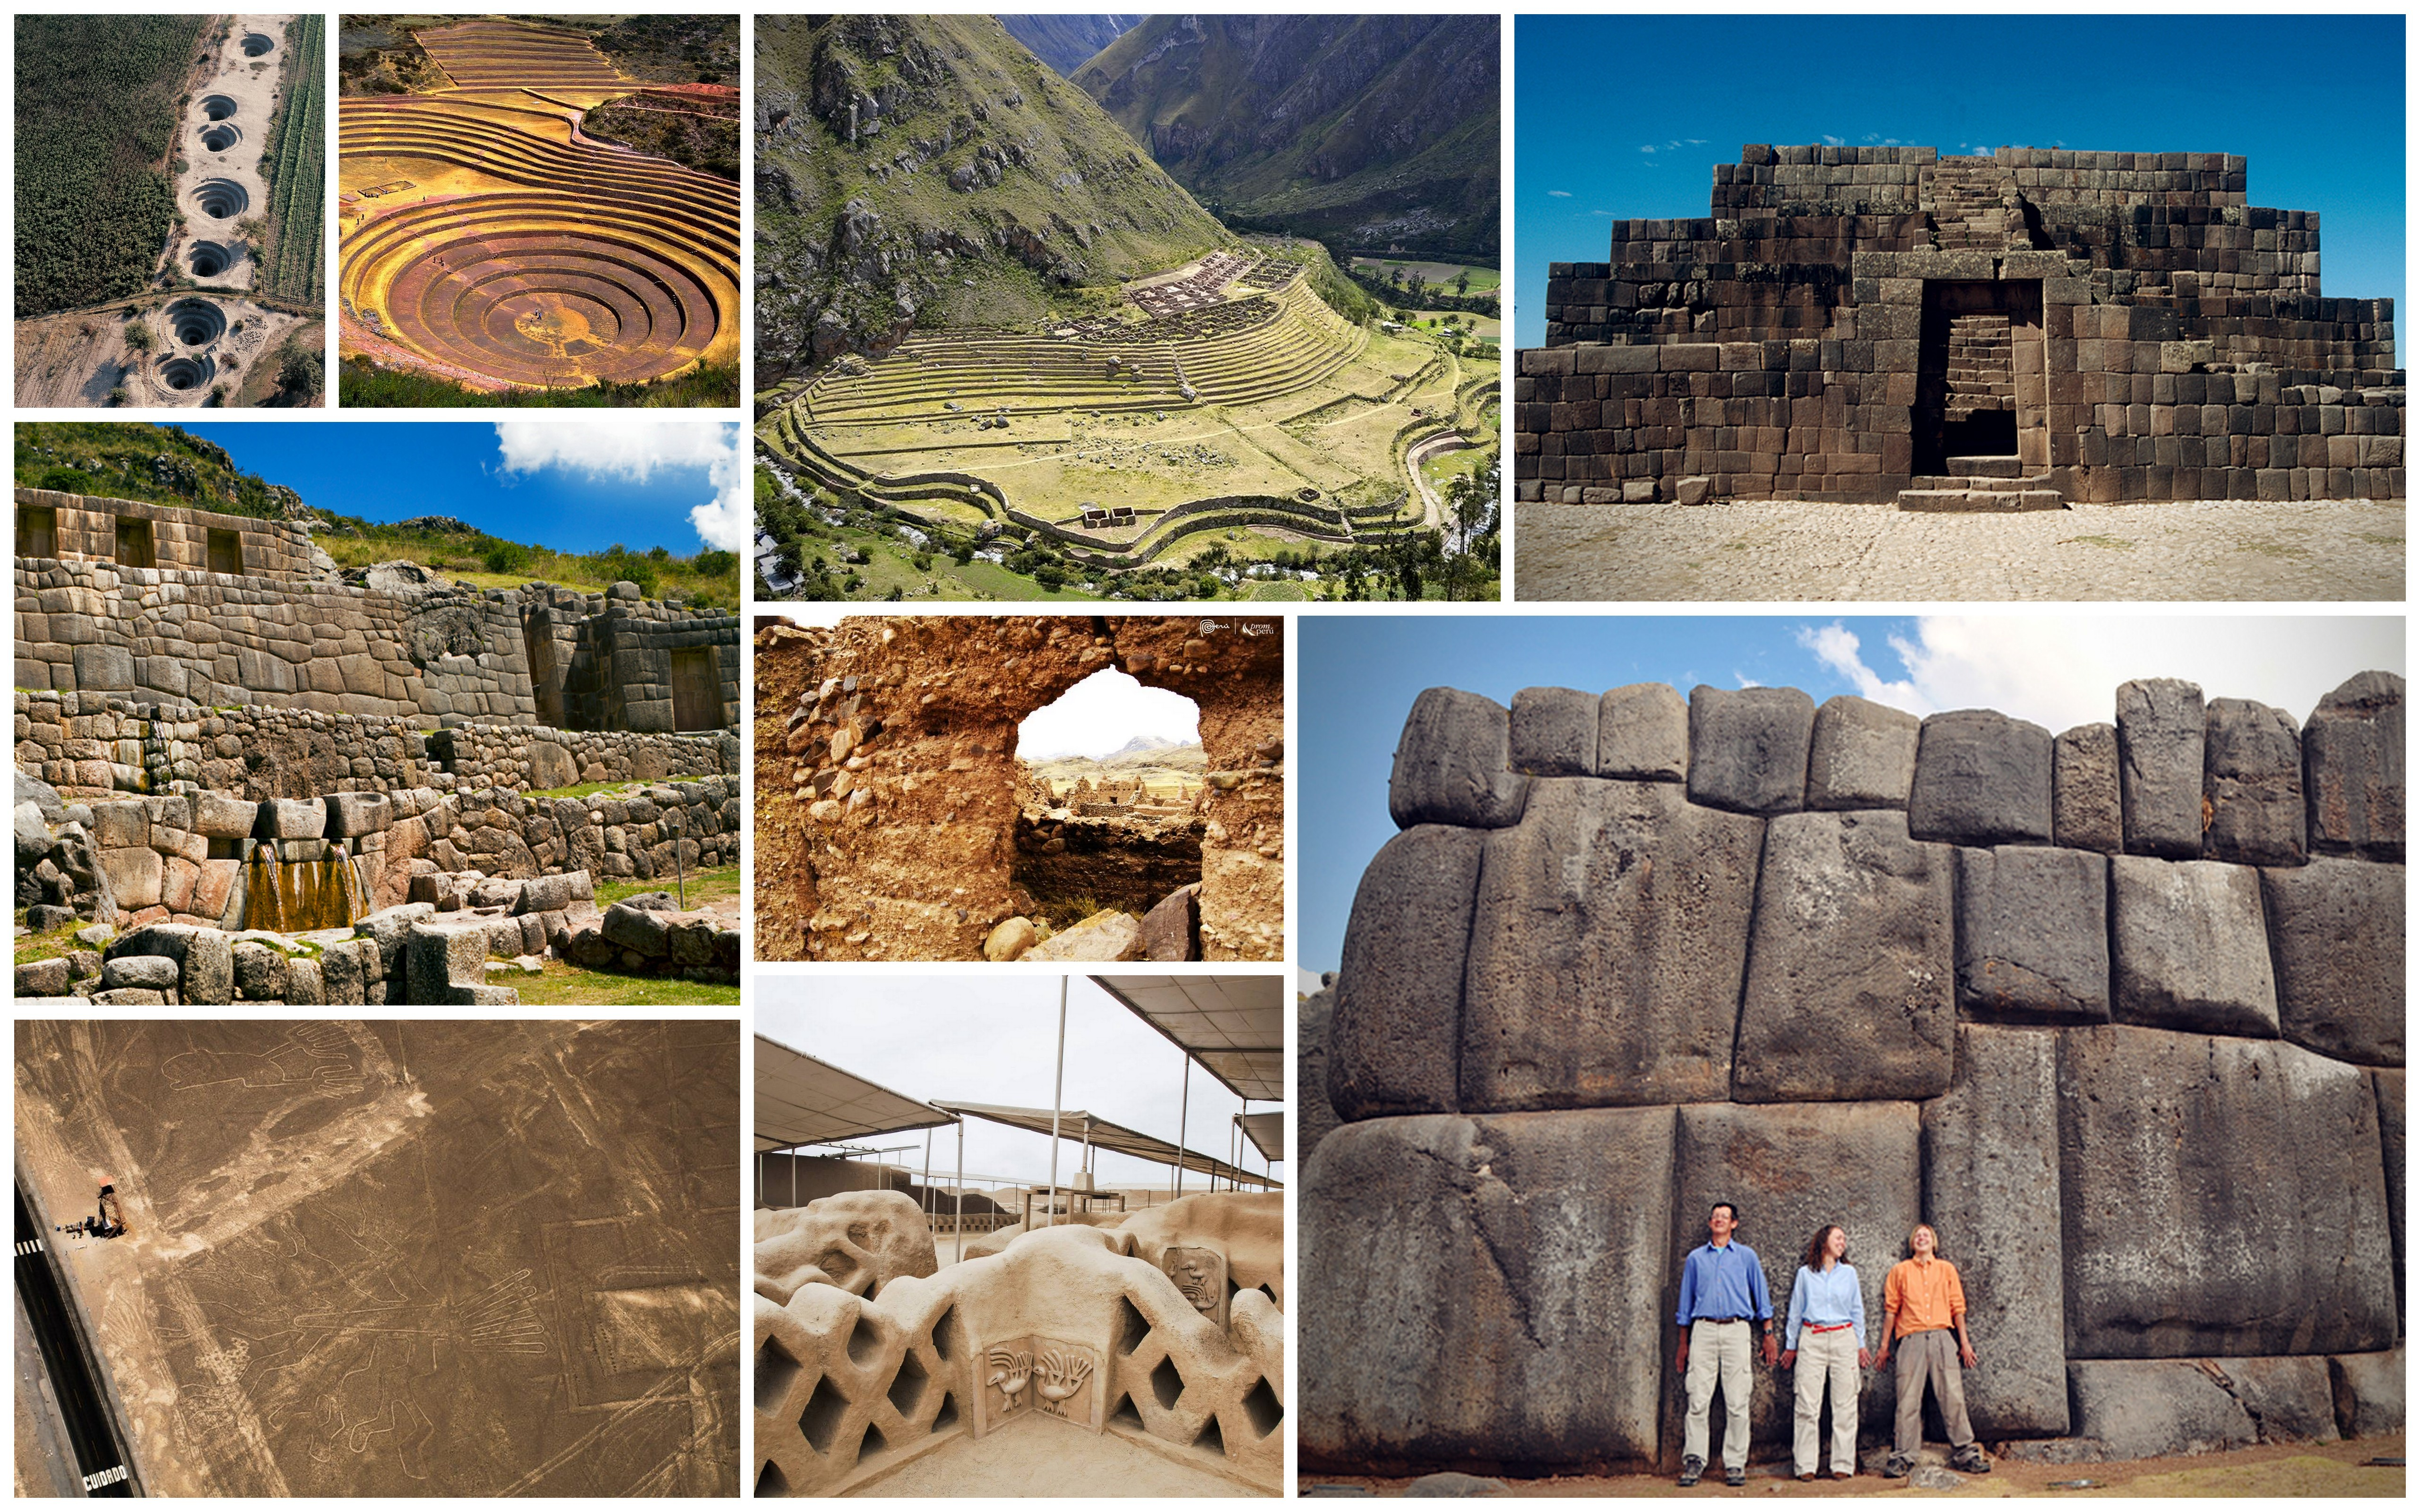 tourism in peru Peru tours and trips 2018/2019 land of the inca's and home to the magnificent lost city machu picchu, discover a country rich in culture and taste it's cevicheperu is a country for adventure travellers, with its dense amazonian rainforests, the rural andes countryside (with the titicaca lake) and some of the world's best museums to be found in lima.